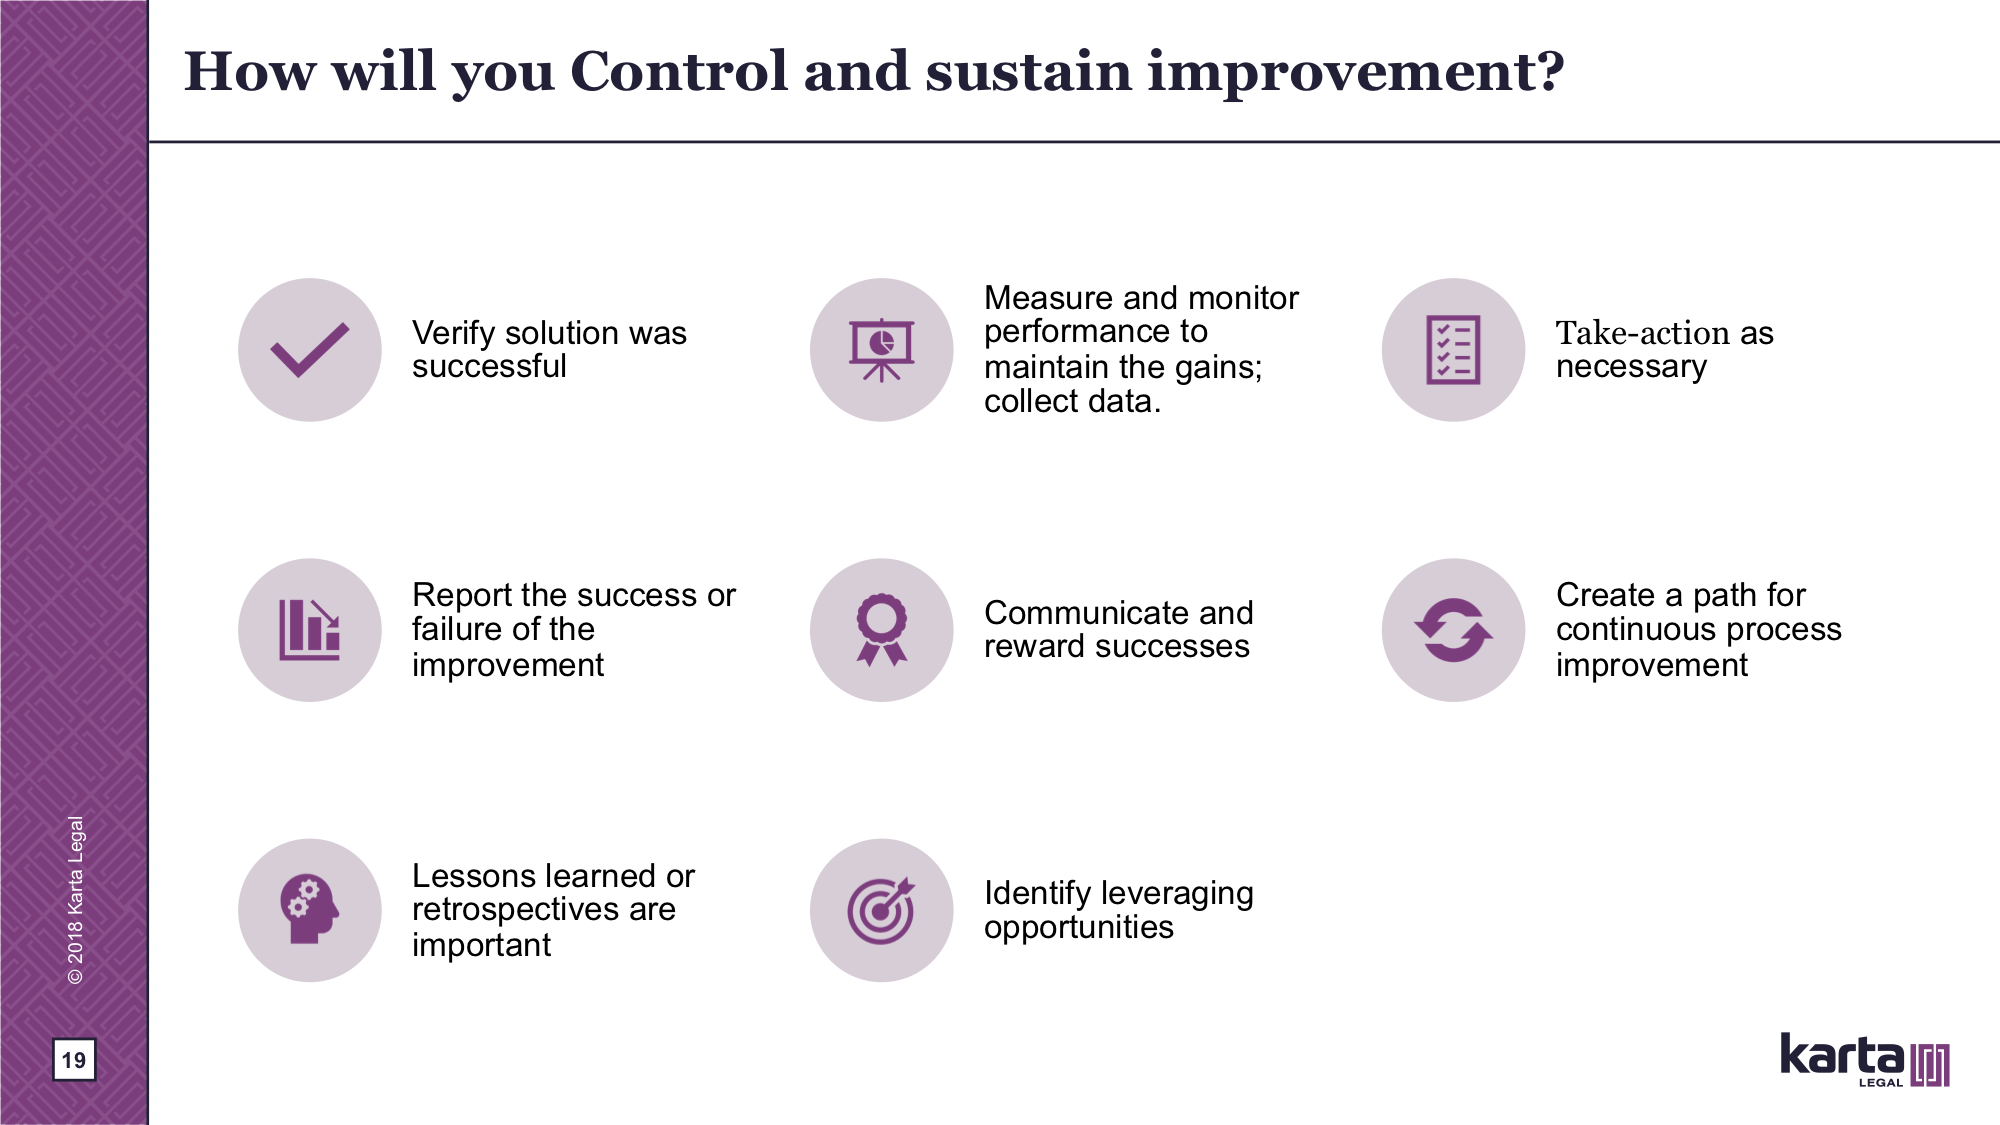 How you control and sustain improvement